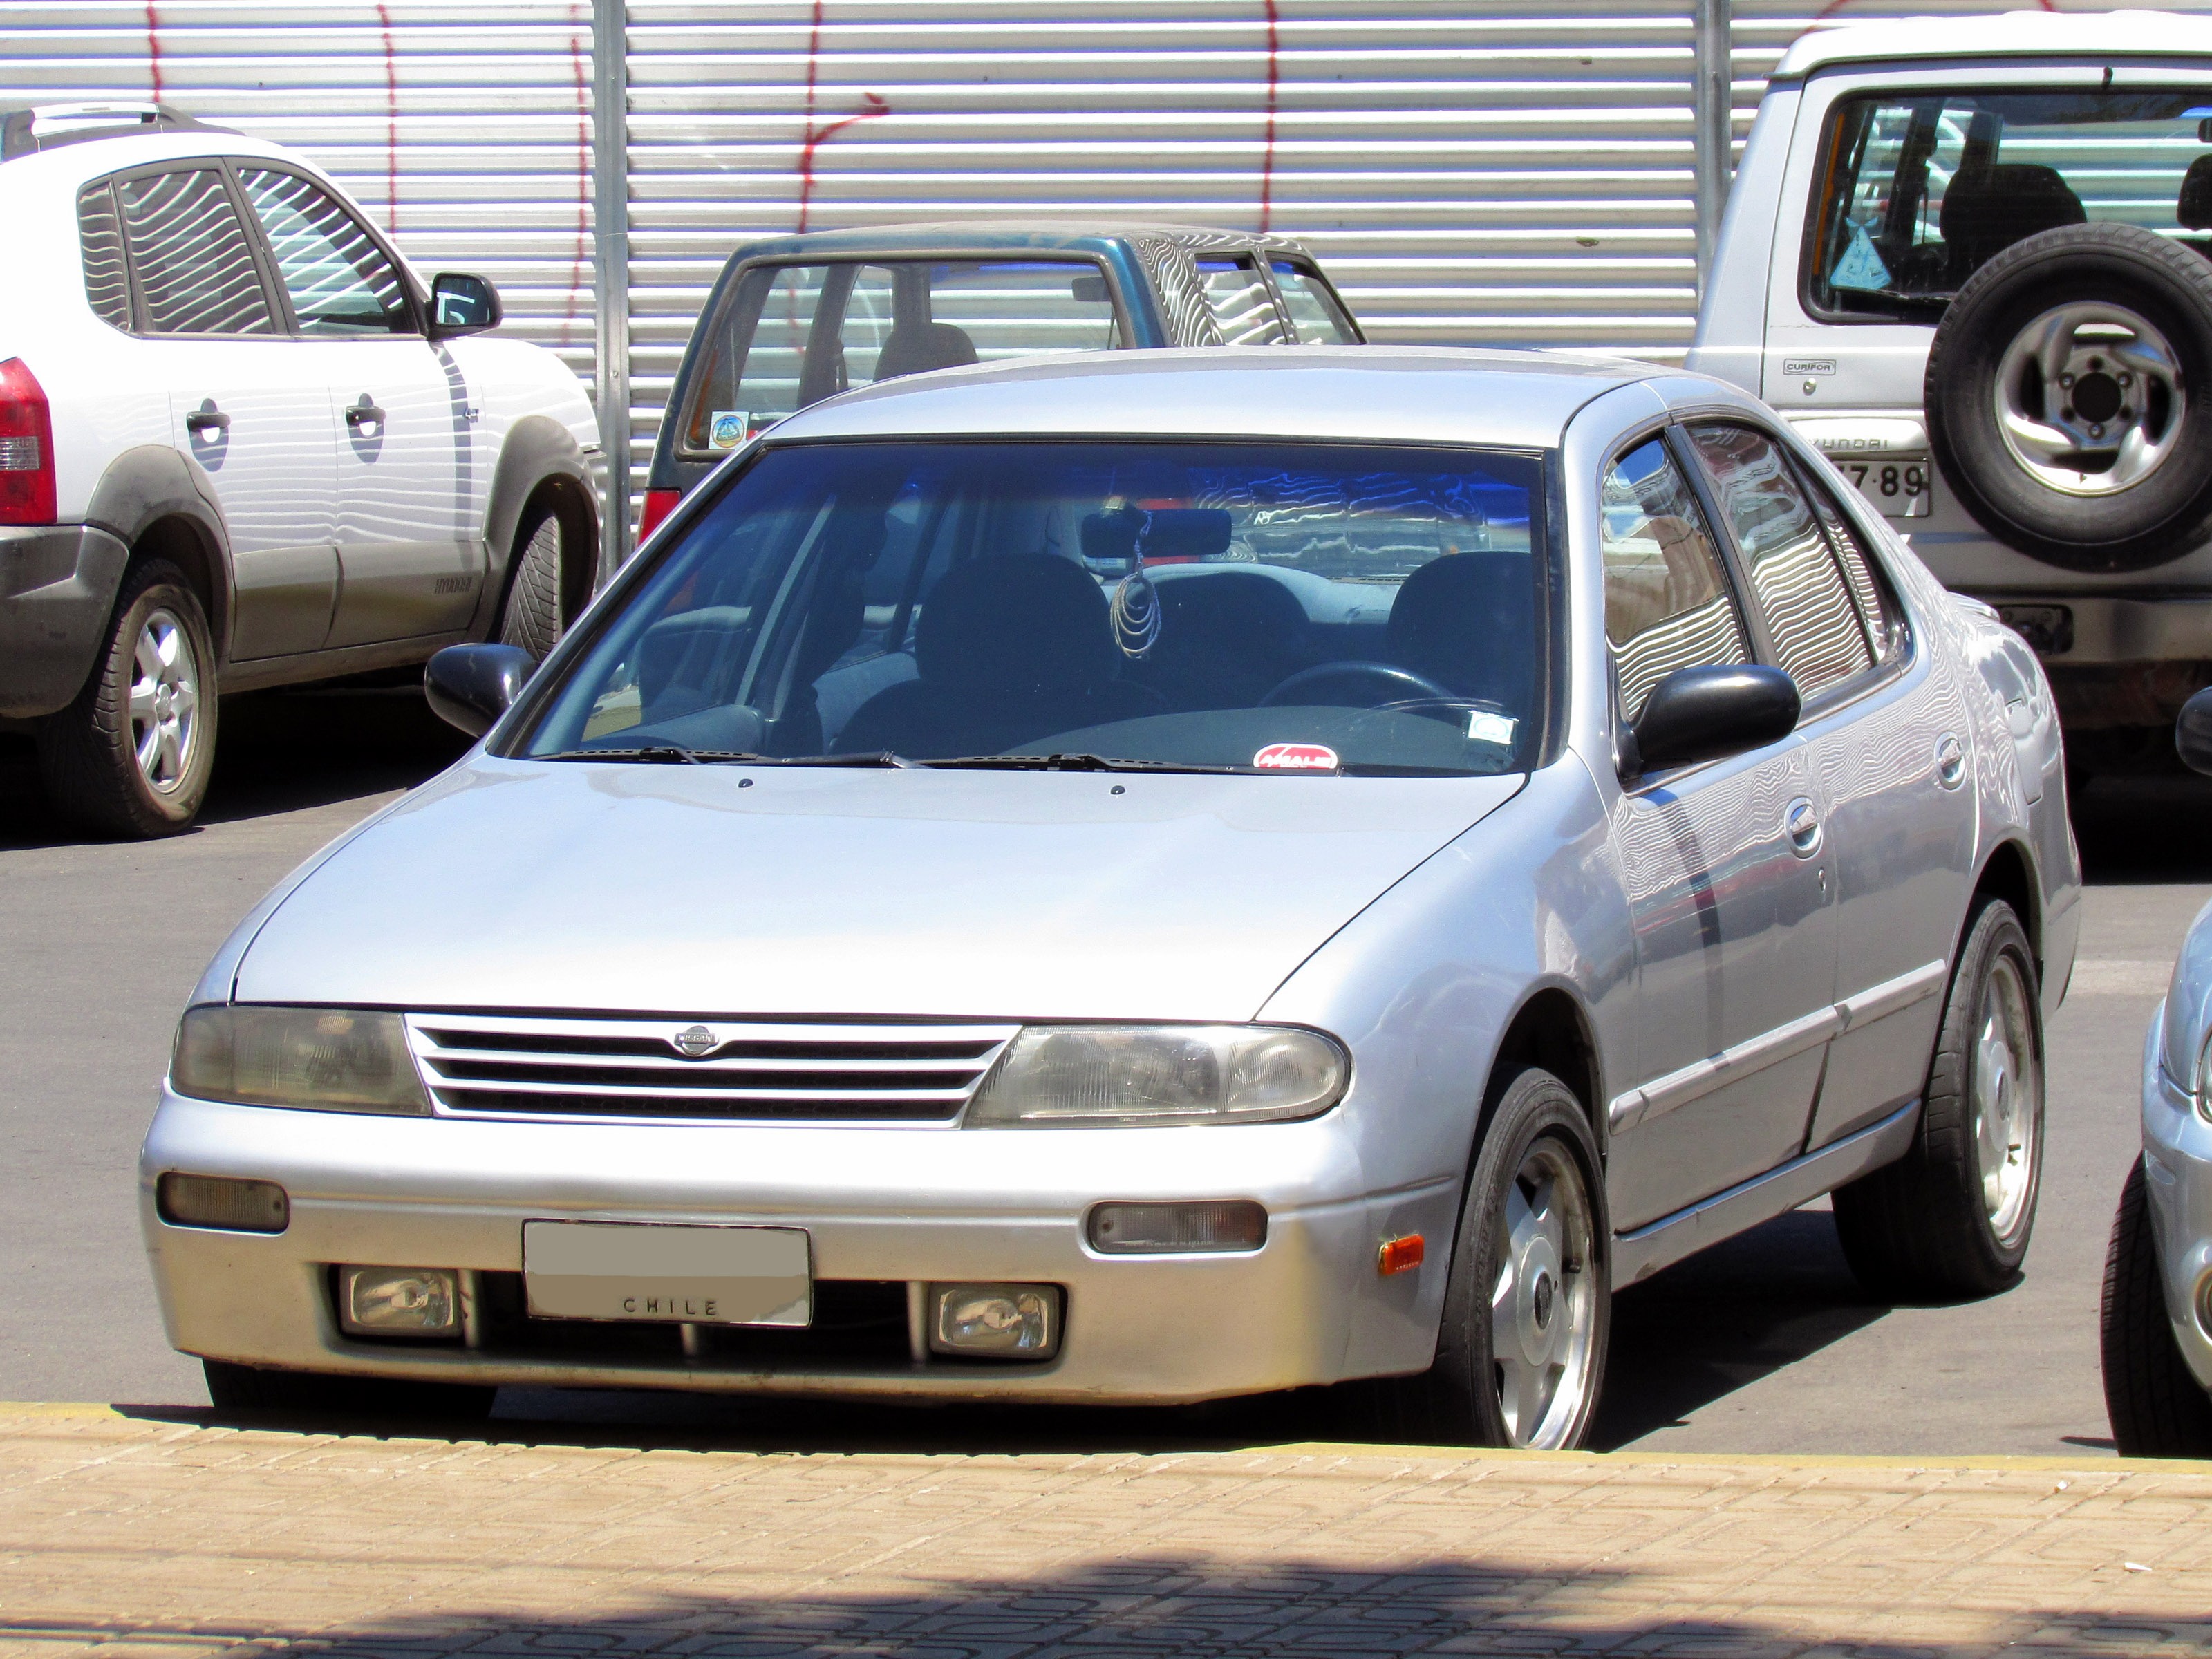 file:nissan altima 2.4 gxe 1995 (14676660319) - wikimedia commons